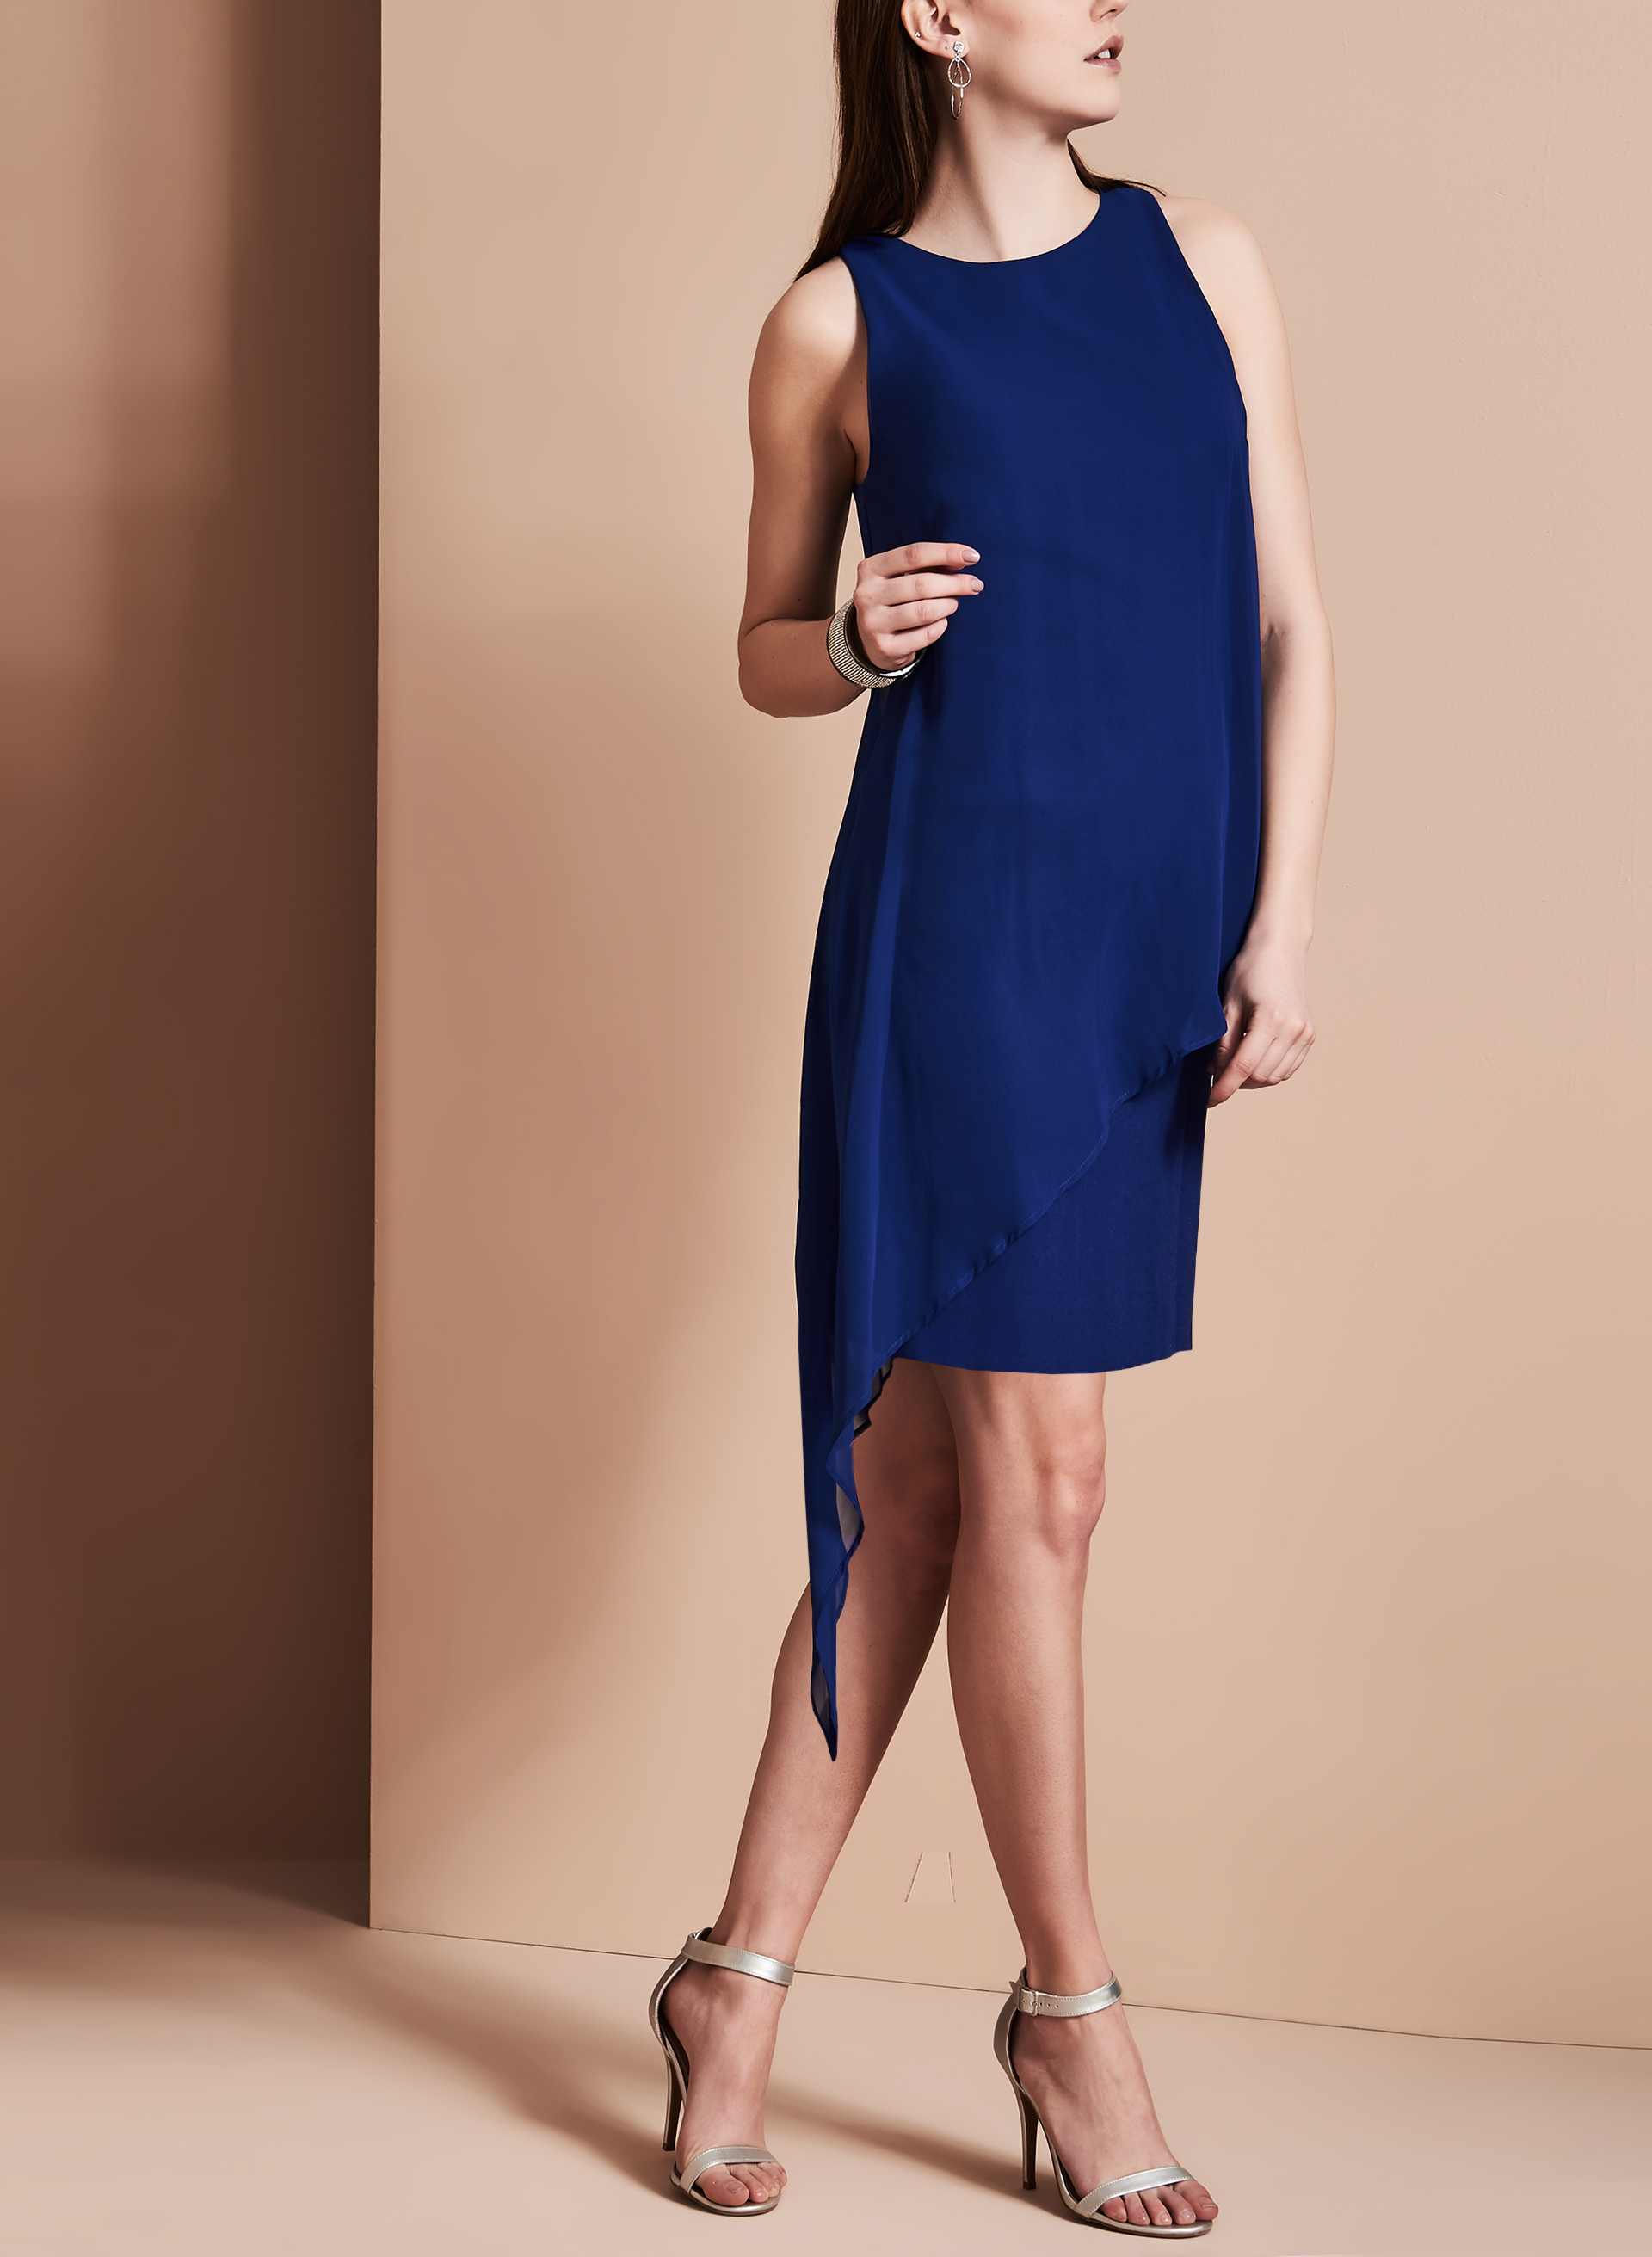 Tahari Asymmetrical Chiffon Dress, Blue, hi-res